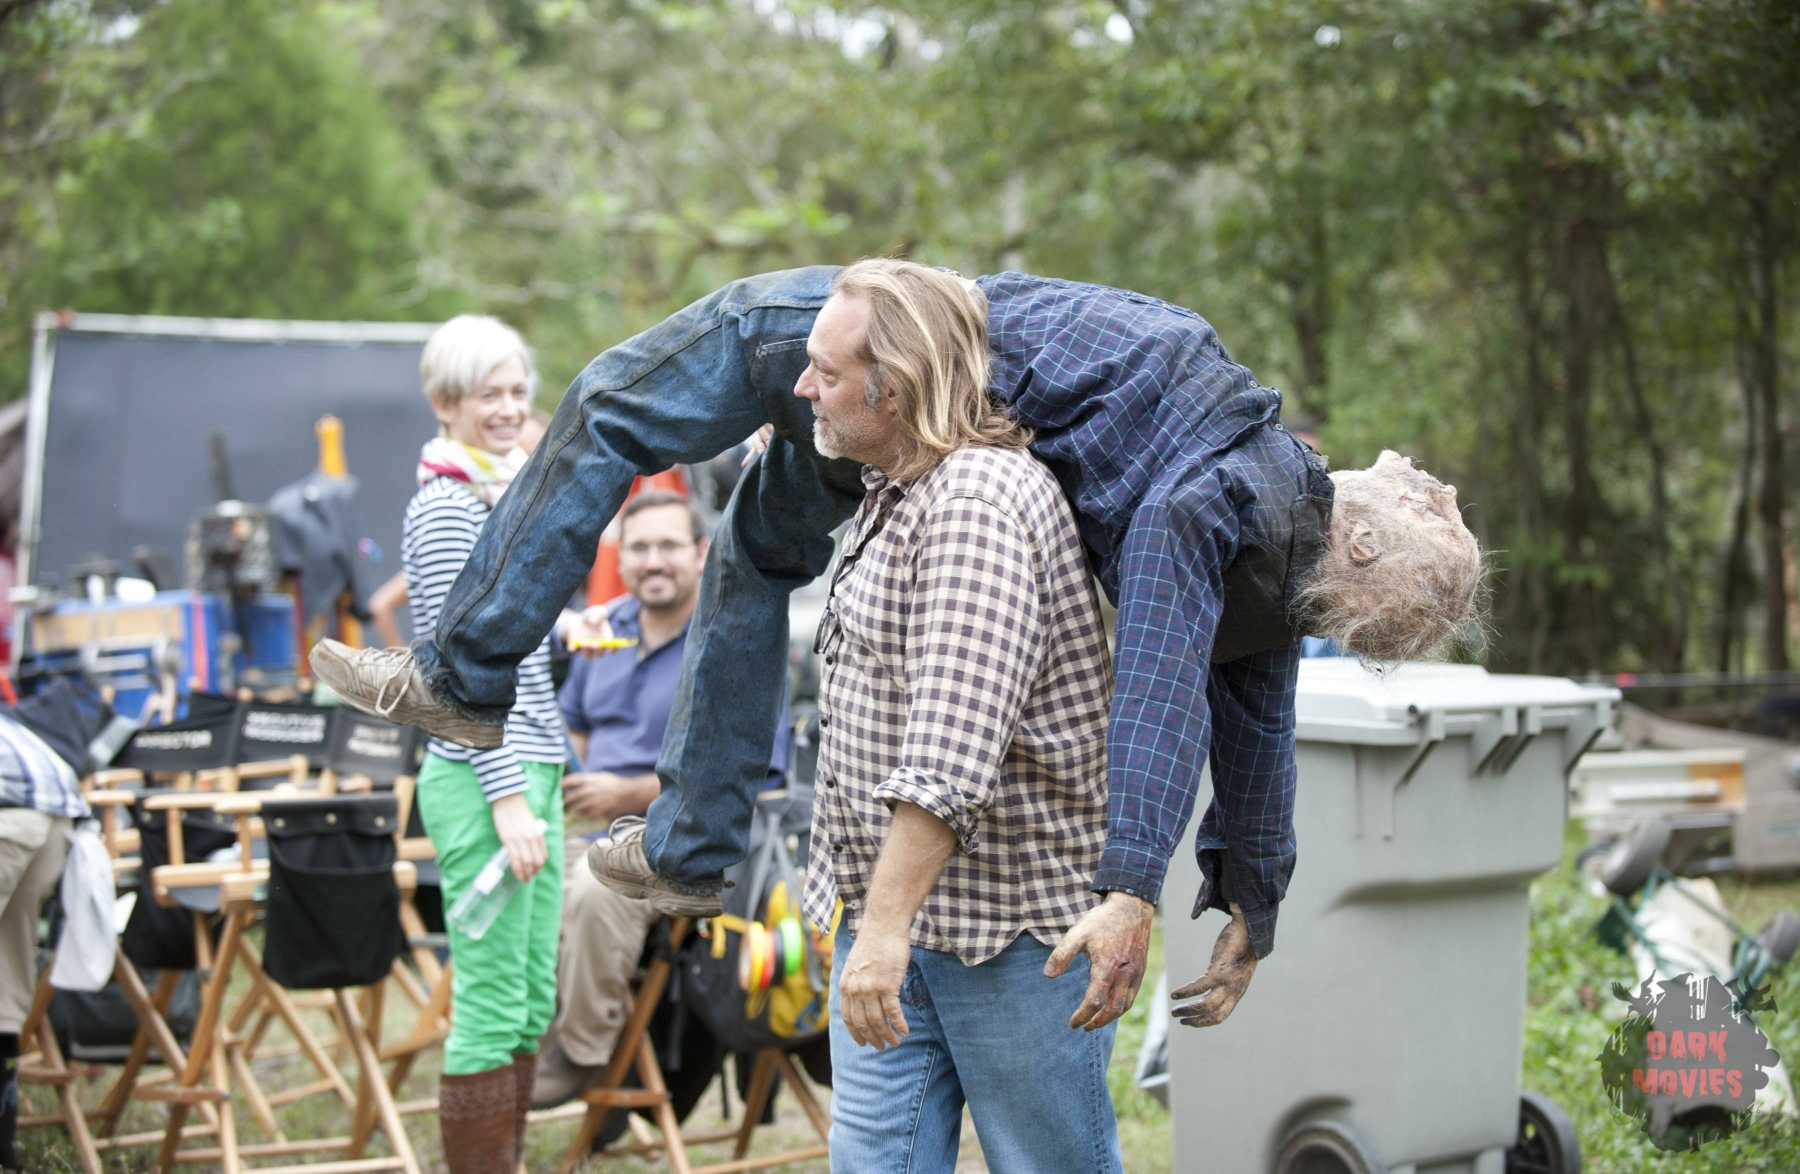 Greg Nicotero and Walker - The Walking Dead _ Season 4, Episode 14 _ BTS - Photo Credit: Gene Page/AMC